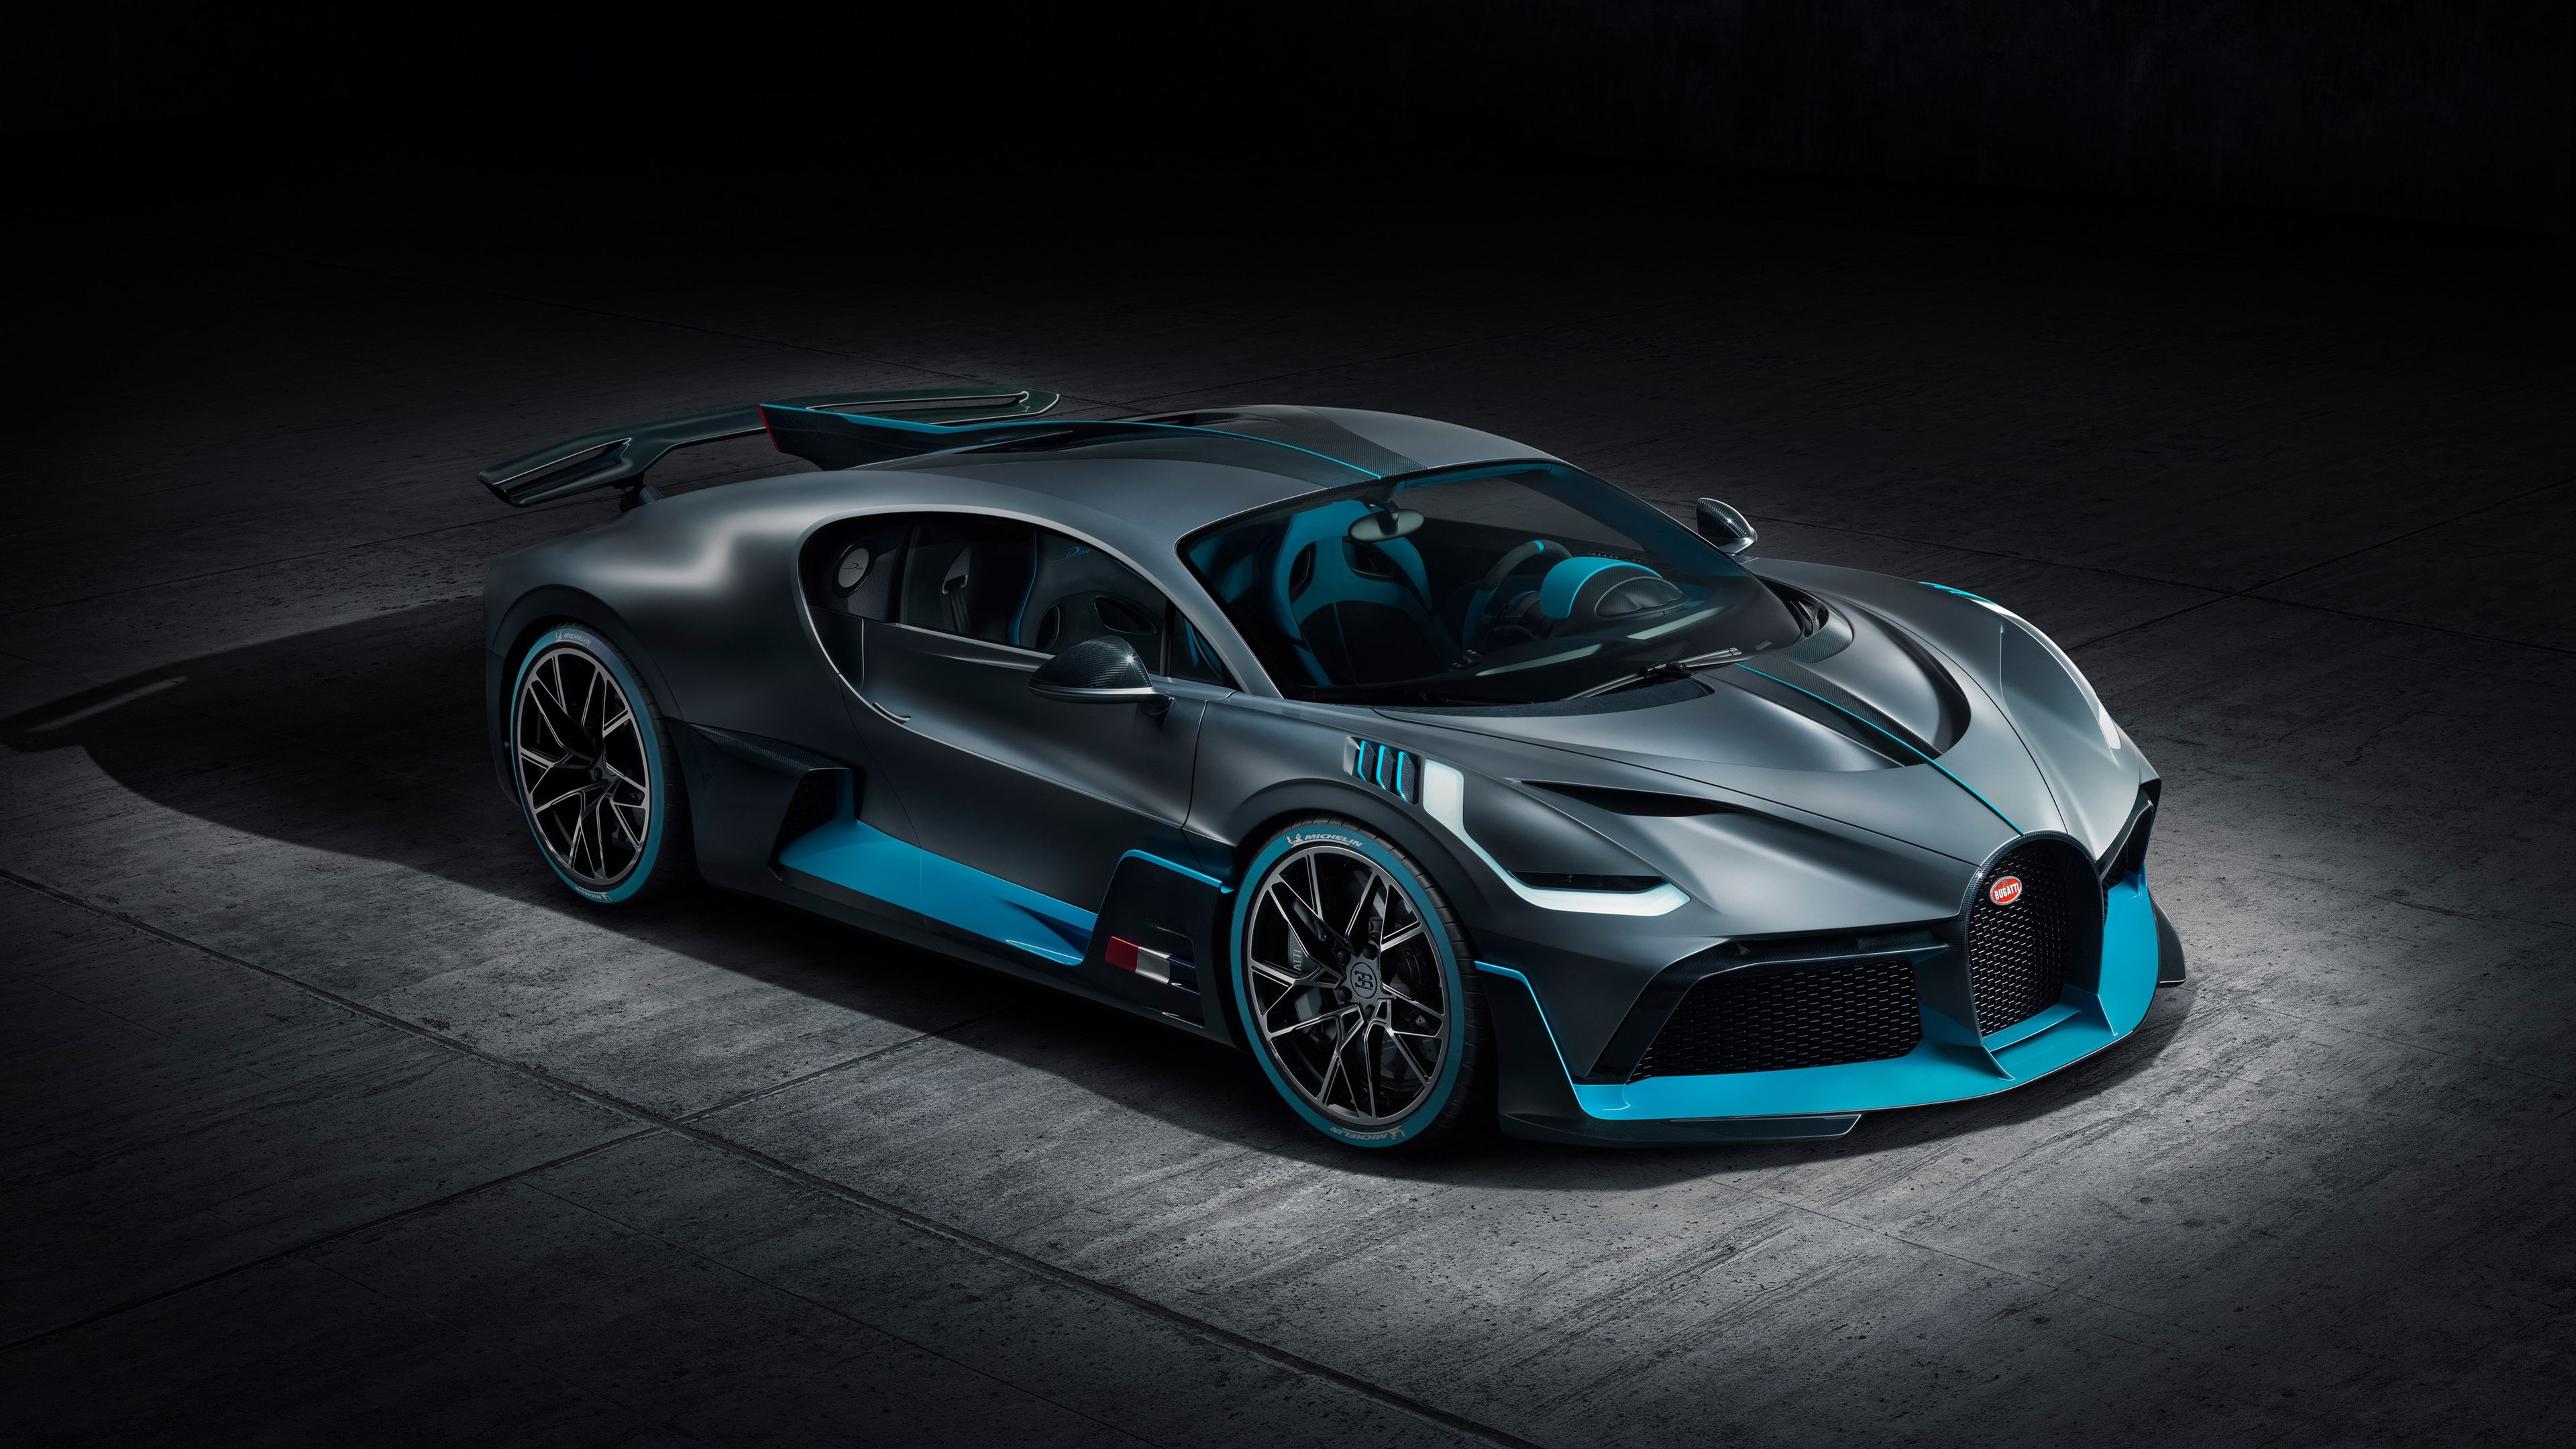 Wallpaper 4k Bugatti Divo 2018 Front 2018 Cars Wallpapers 4k